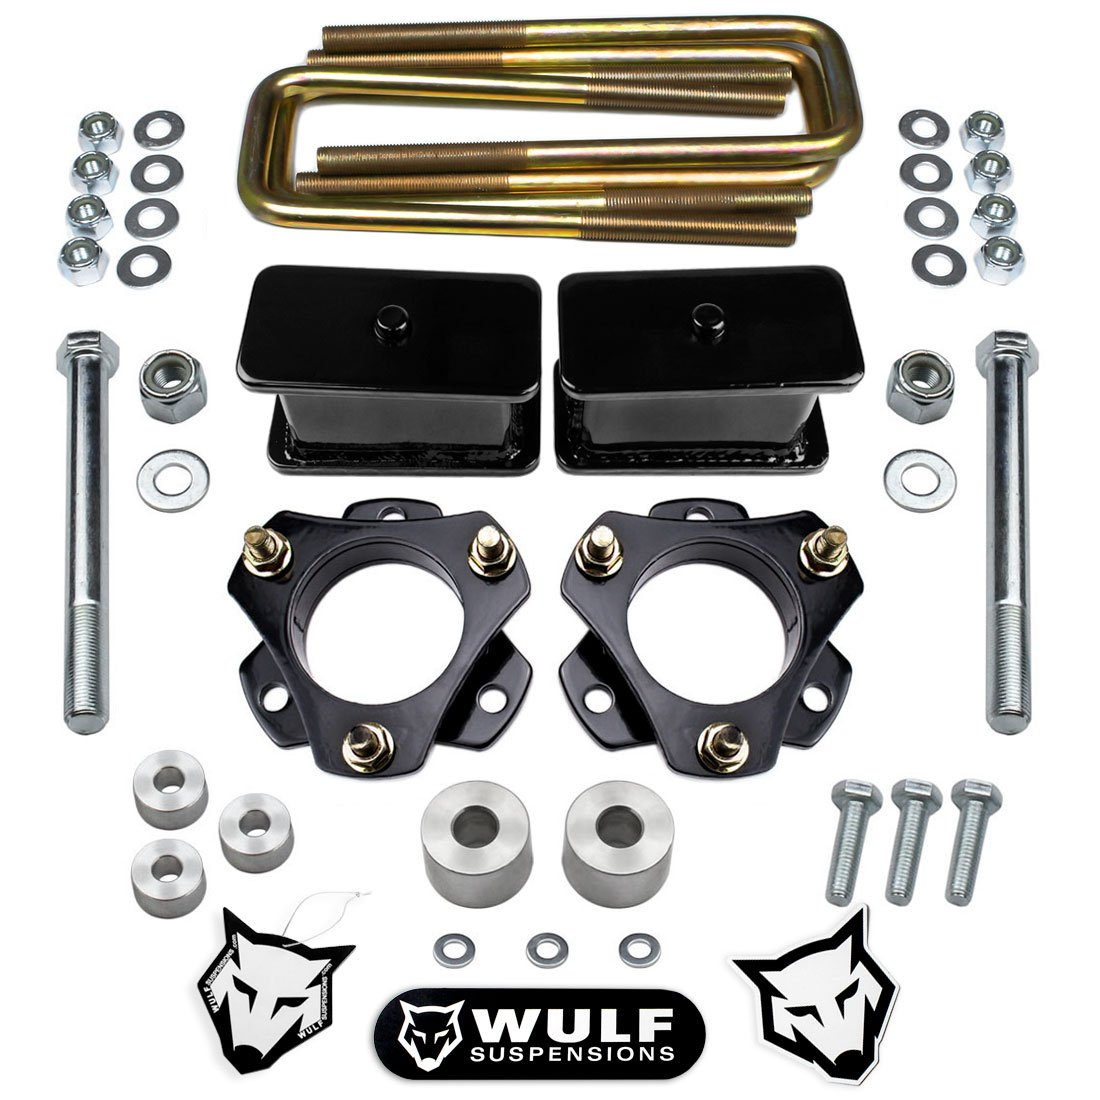 WULF 2005-2018 Toyota Tacoma 3' Front 3' Rear Lift Kit Differential Drop 2WD 4WD 4X4 Suspensions 6 Lug Models ONLY Wulf Suspensions